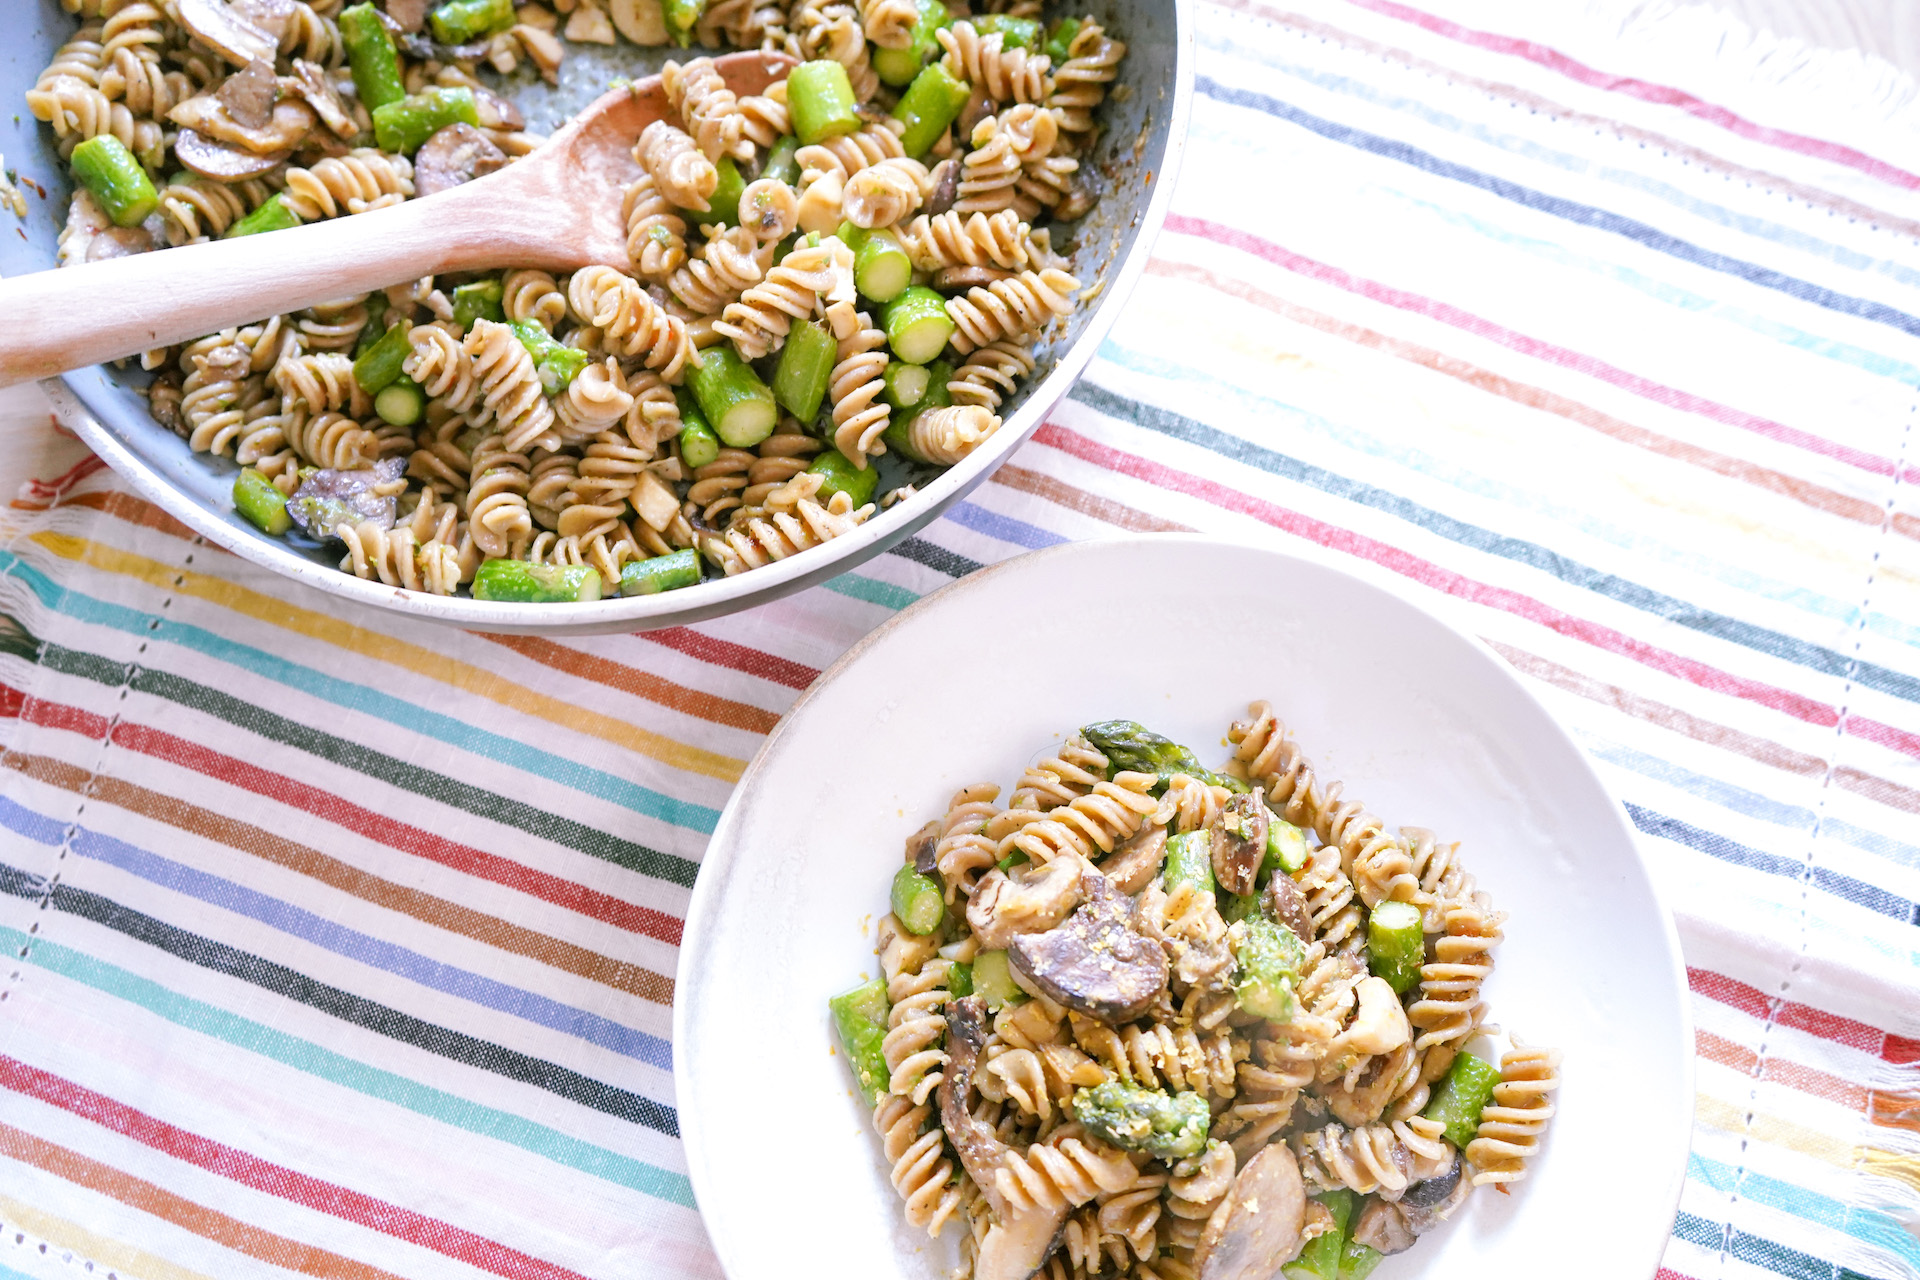 Asparagus Mushroom Summer Pasta - Girls Living Well; Click to read learn to make this Asparagus Mushroom Summer Pasta on Girls Living Well! With so many healthy and tasty gluten free pasta options, we are always coming up with delicious recipes for a quick, satisfying, plant lunch or dinner option. Asparagus is in season and I came up with a recipe. Best pasta salad recipes vegetarian cold. Pasta salad recipes healthy easy. Pasta recipes homemade Italian foods. Veggie pasta recipes healthy. Asparagus recipes baked healthy simple.